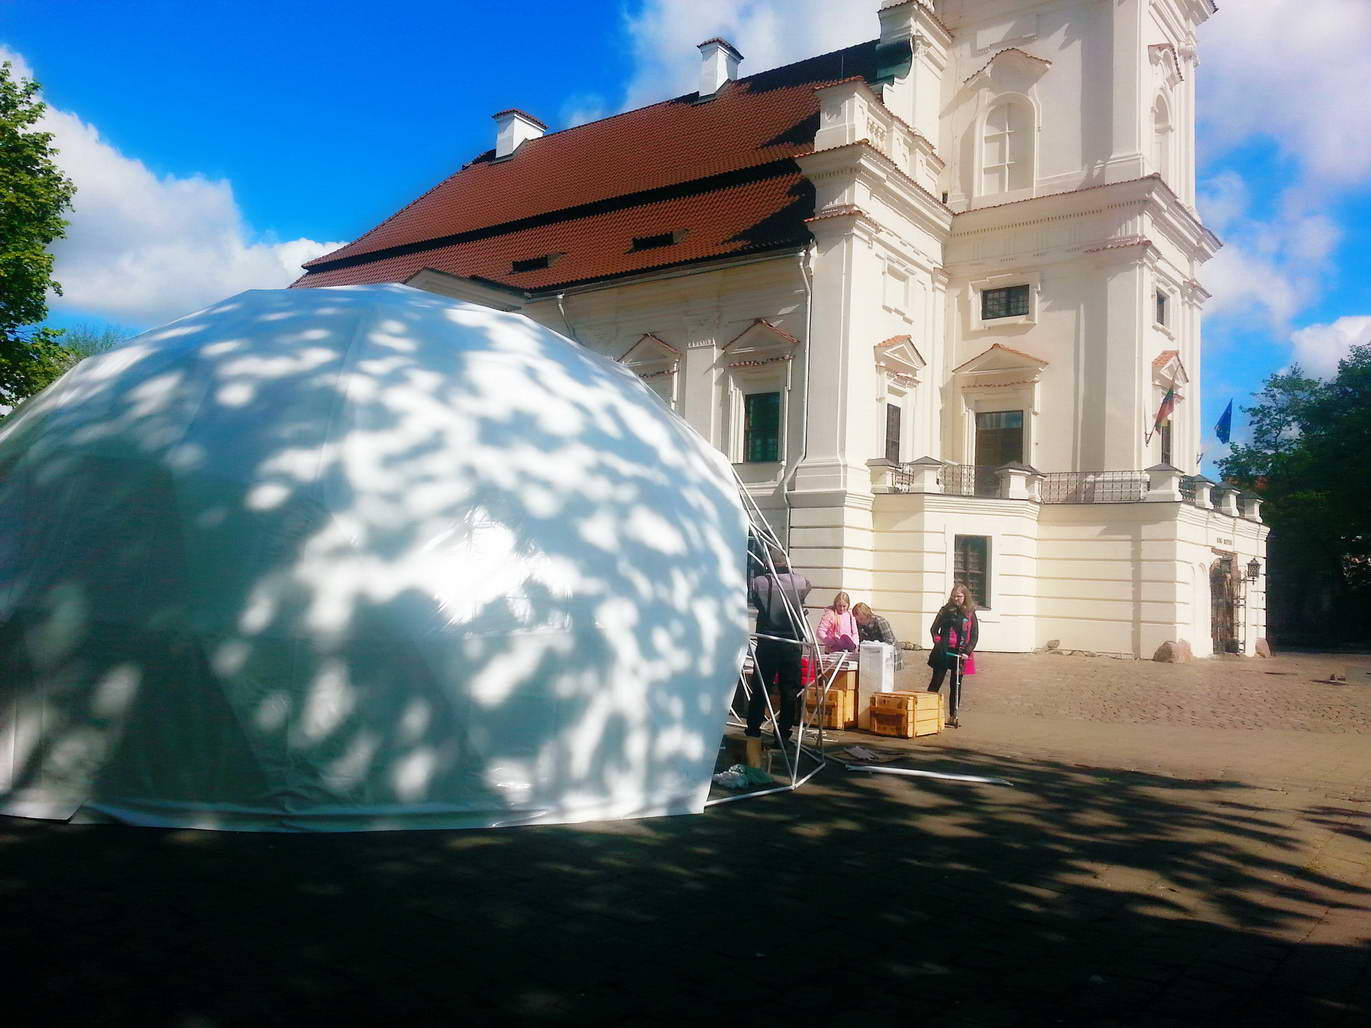 Portable dome Ø8m for Design Week 2014 Kaunas, Lithuania